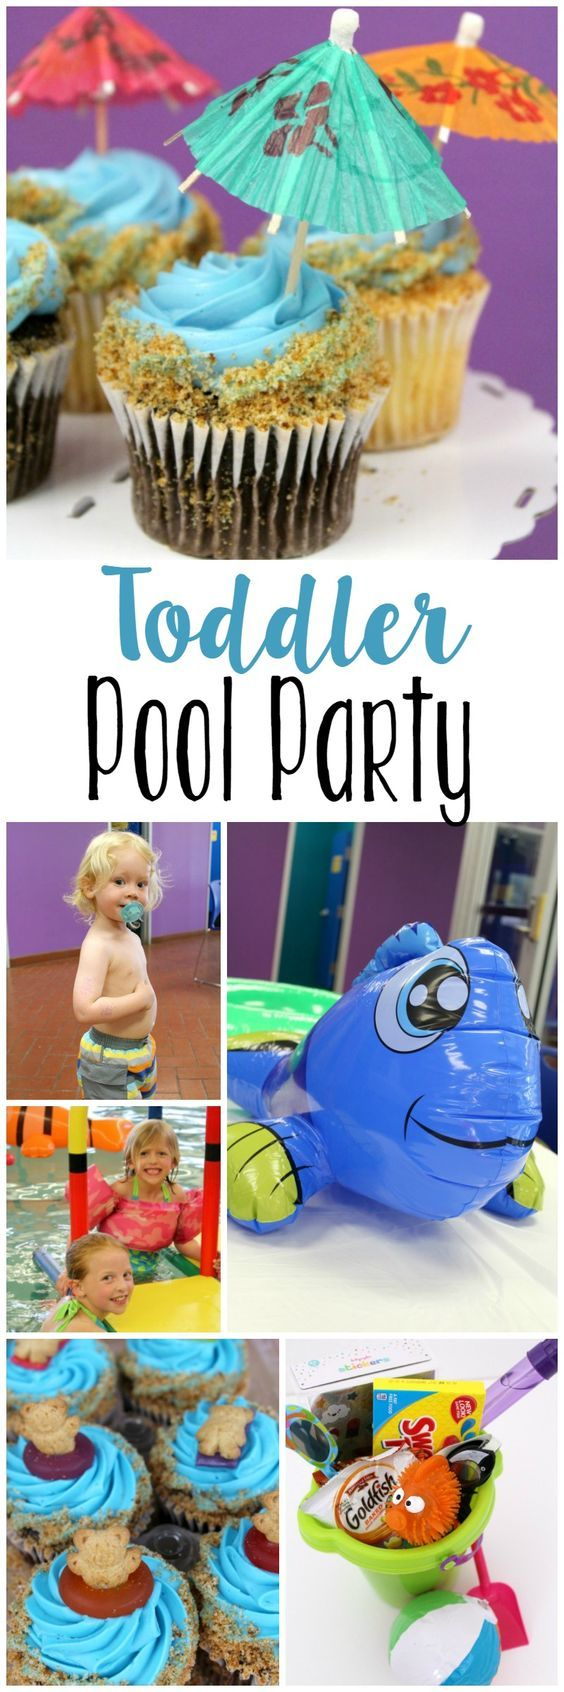 25 best swim party favors ideas on pinterest swimming - Swimming pool party ideas for kids ...